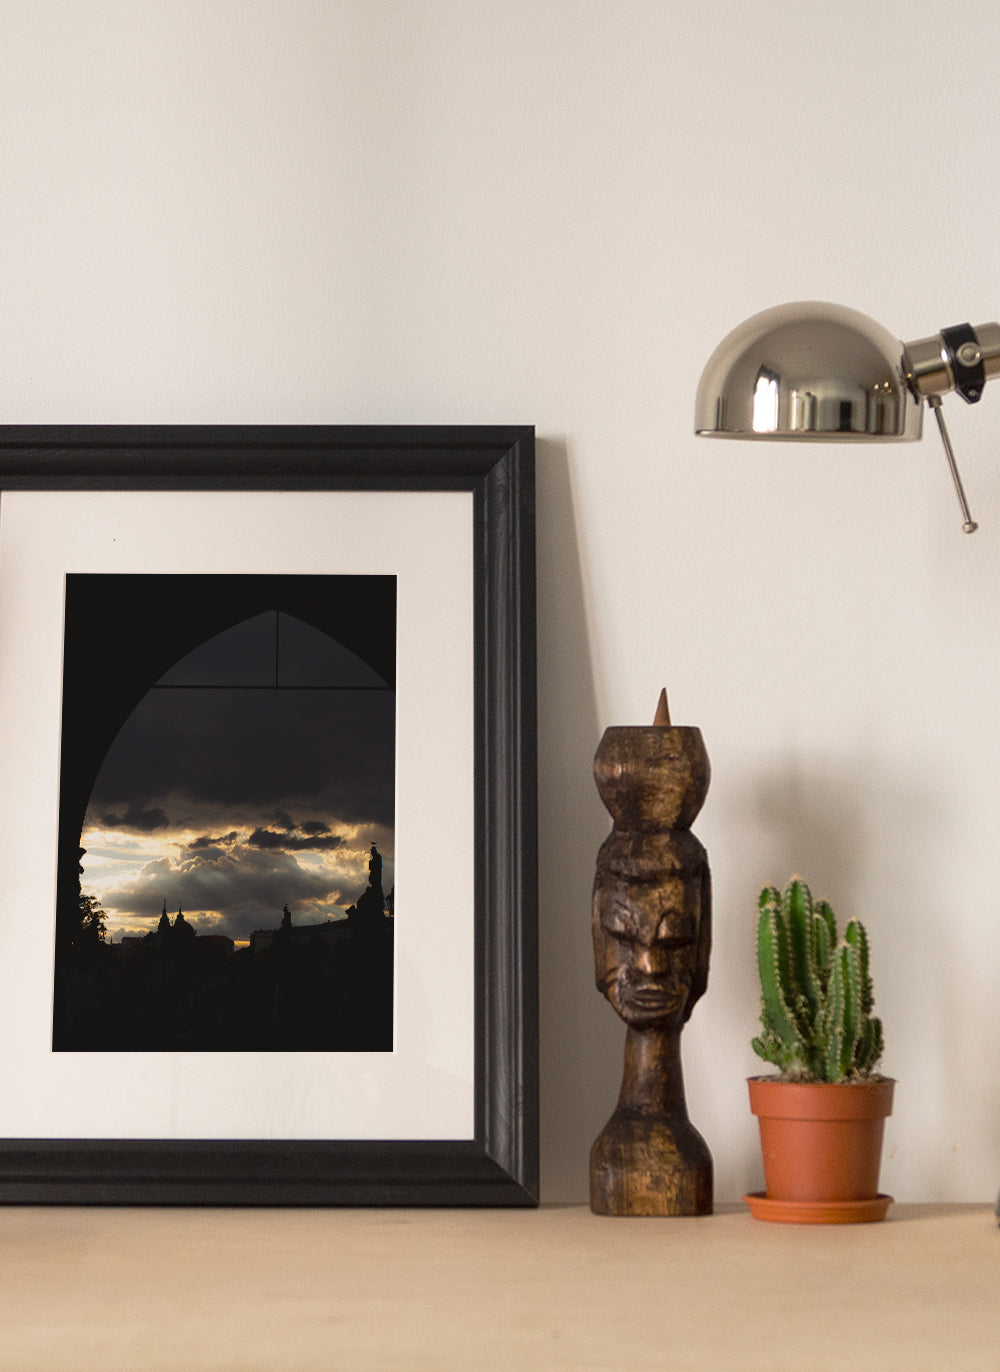 Framed art print with cactus